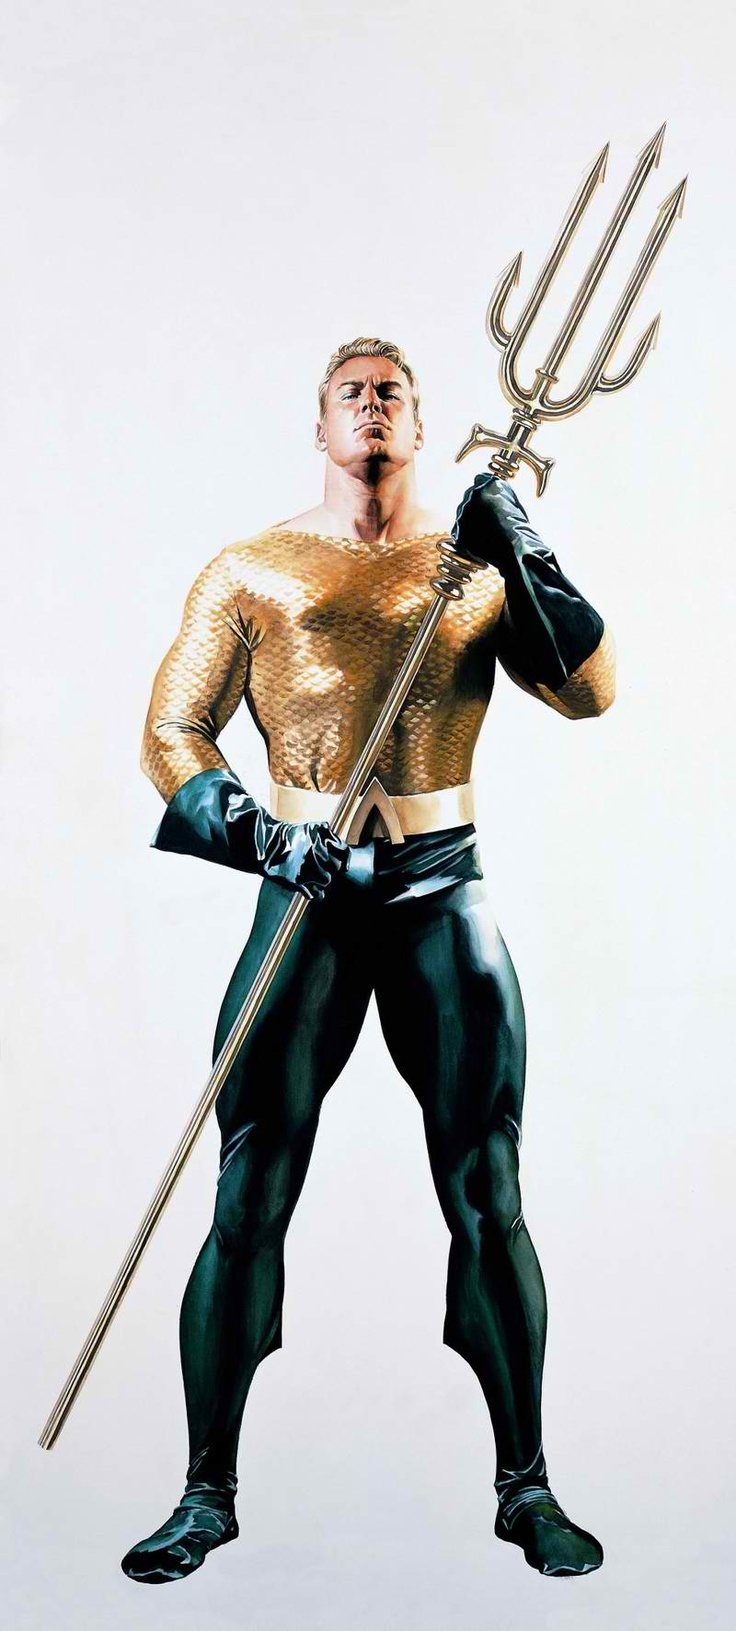 Aquaman from the DC universe by Alex Ross. Here the king of the sea stands tall with his signature trident which he uses to police his kingdom.